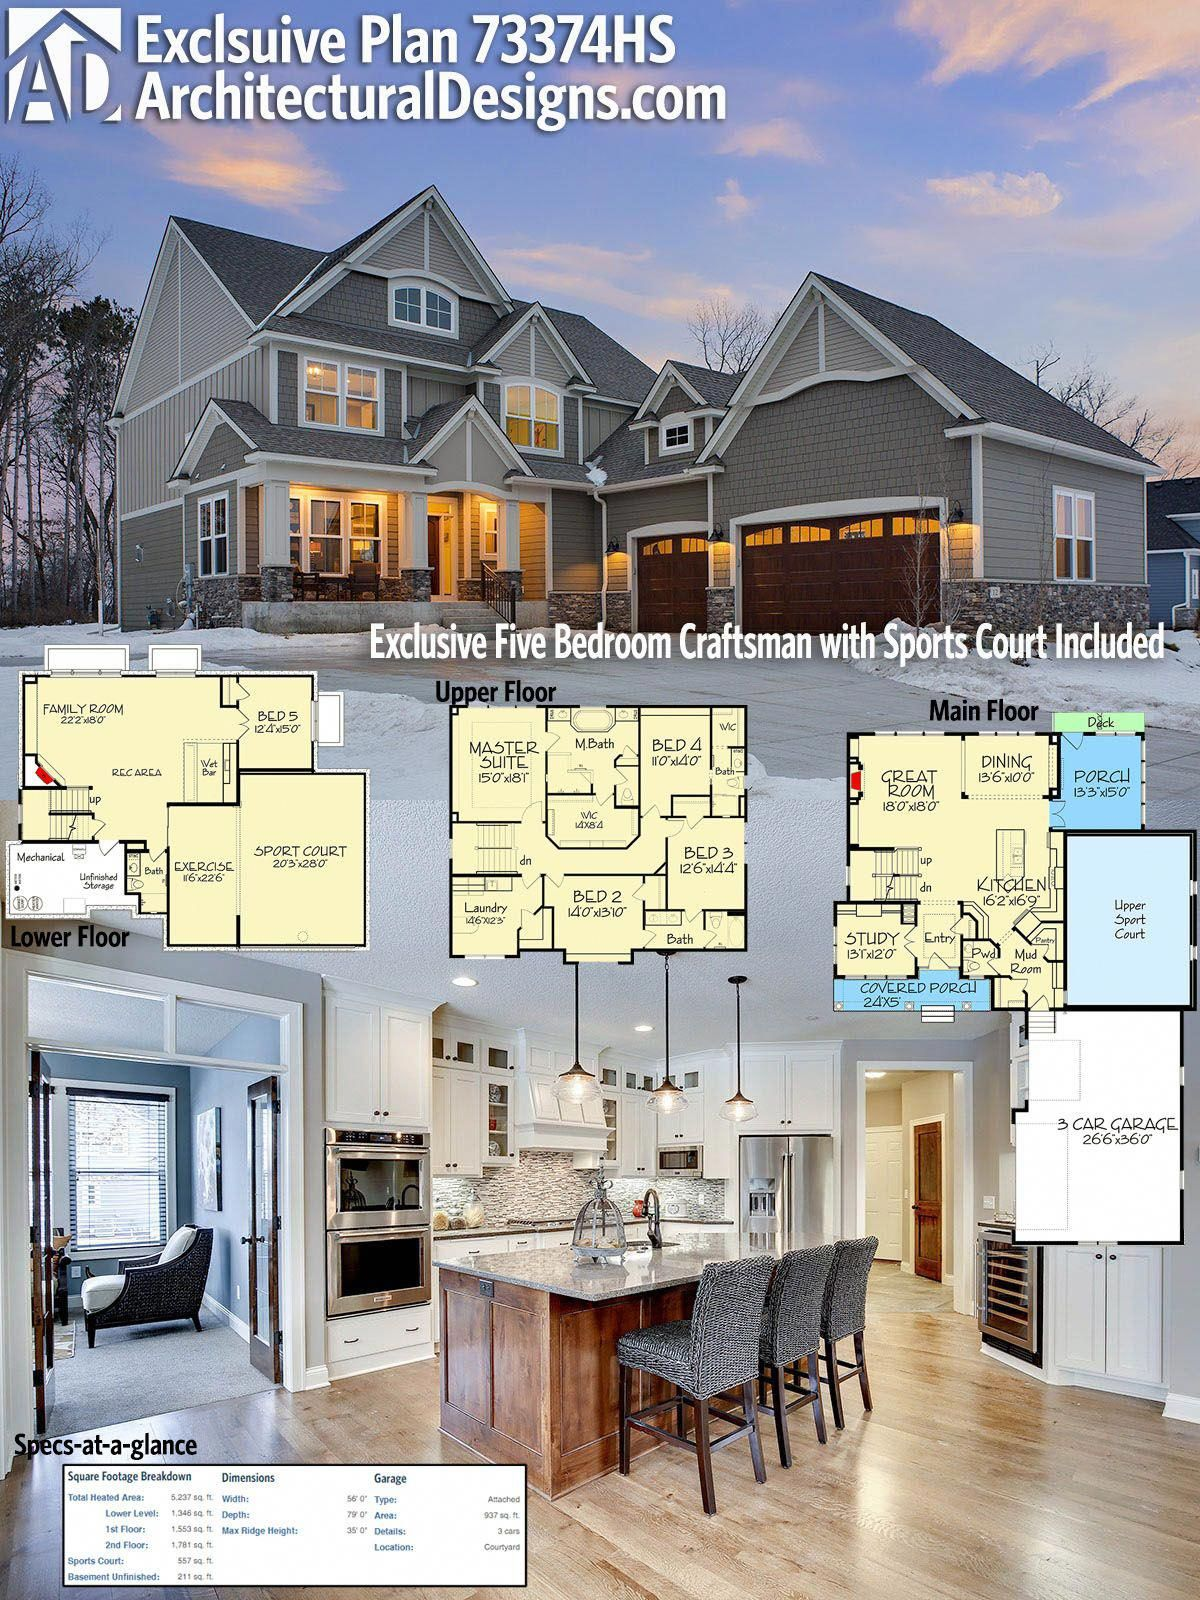 Designed for the large active family architectural designs